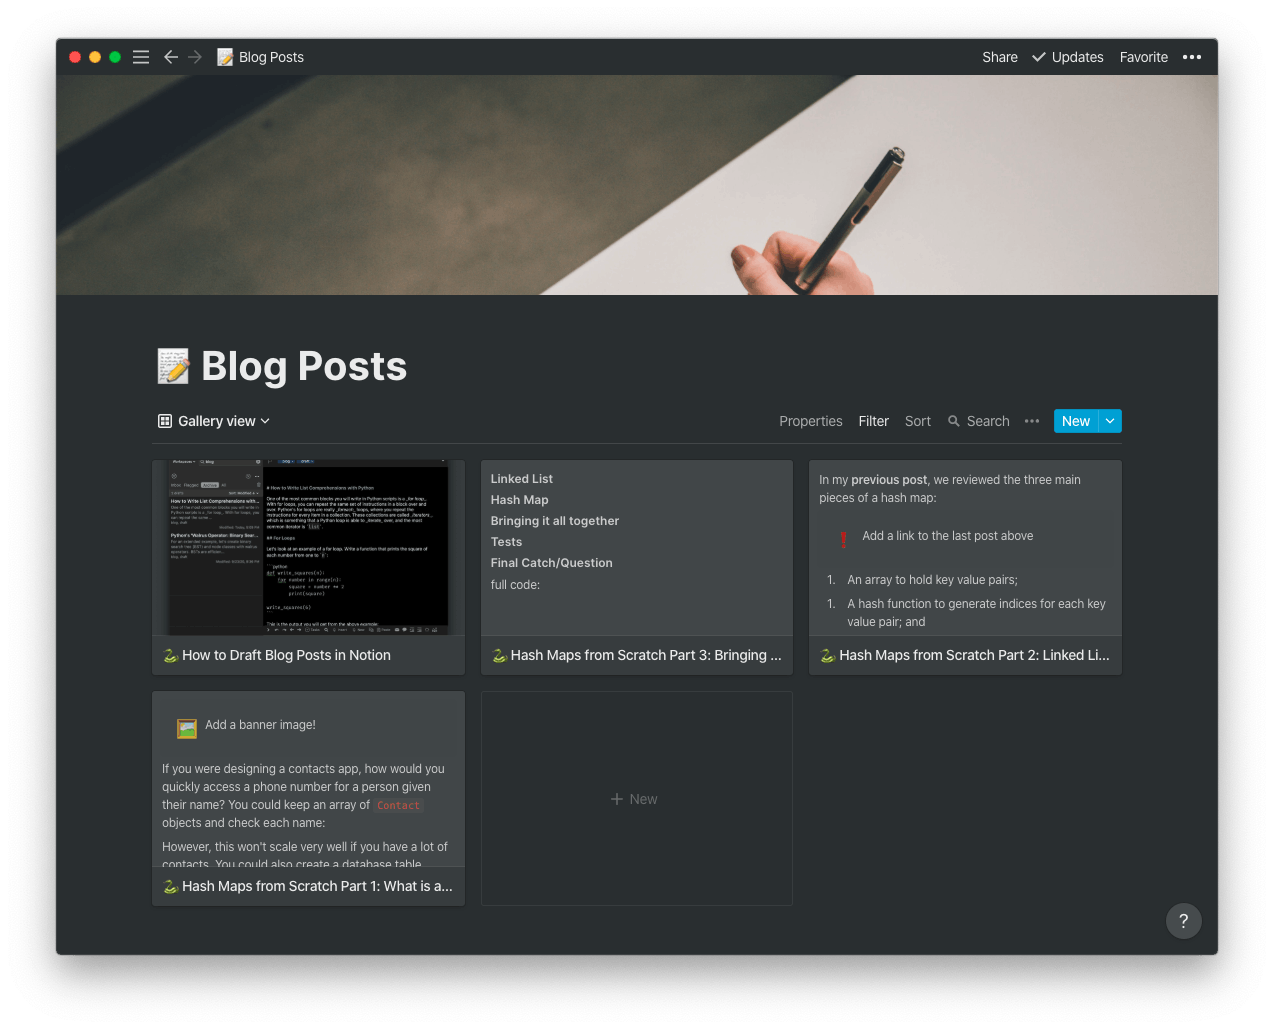 Gallery View of My Blog Posts